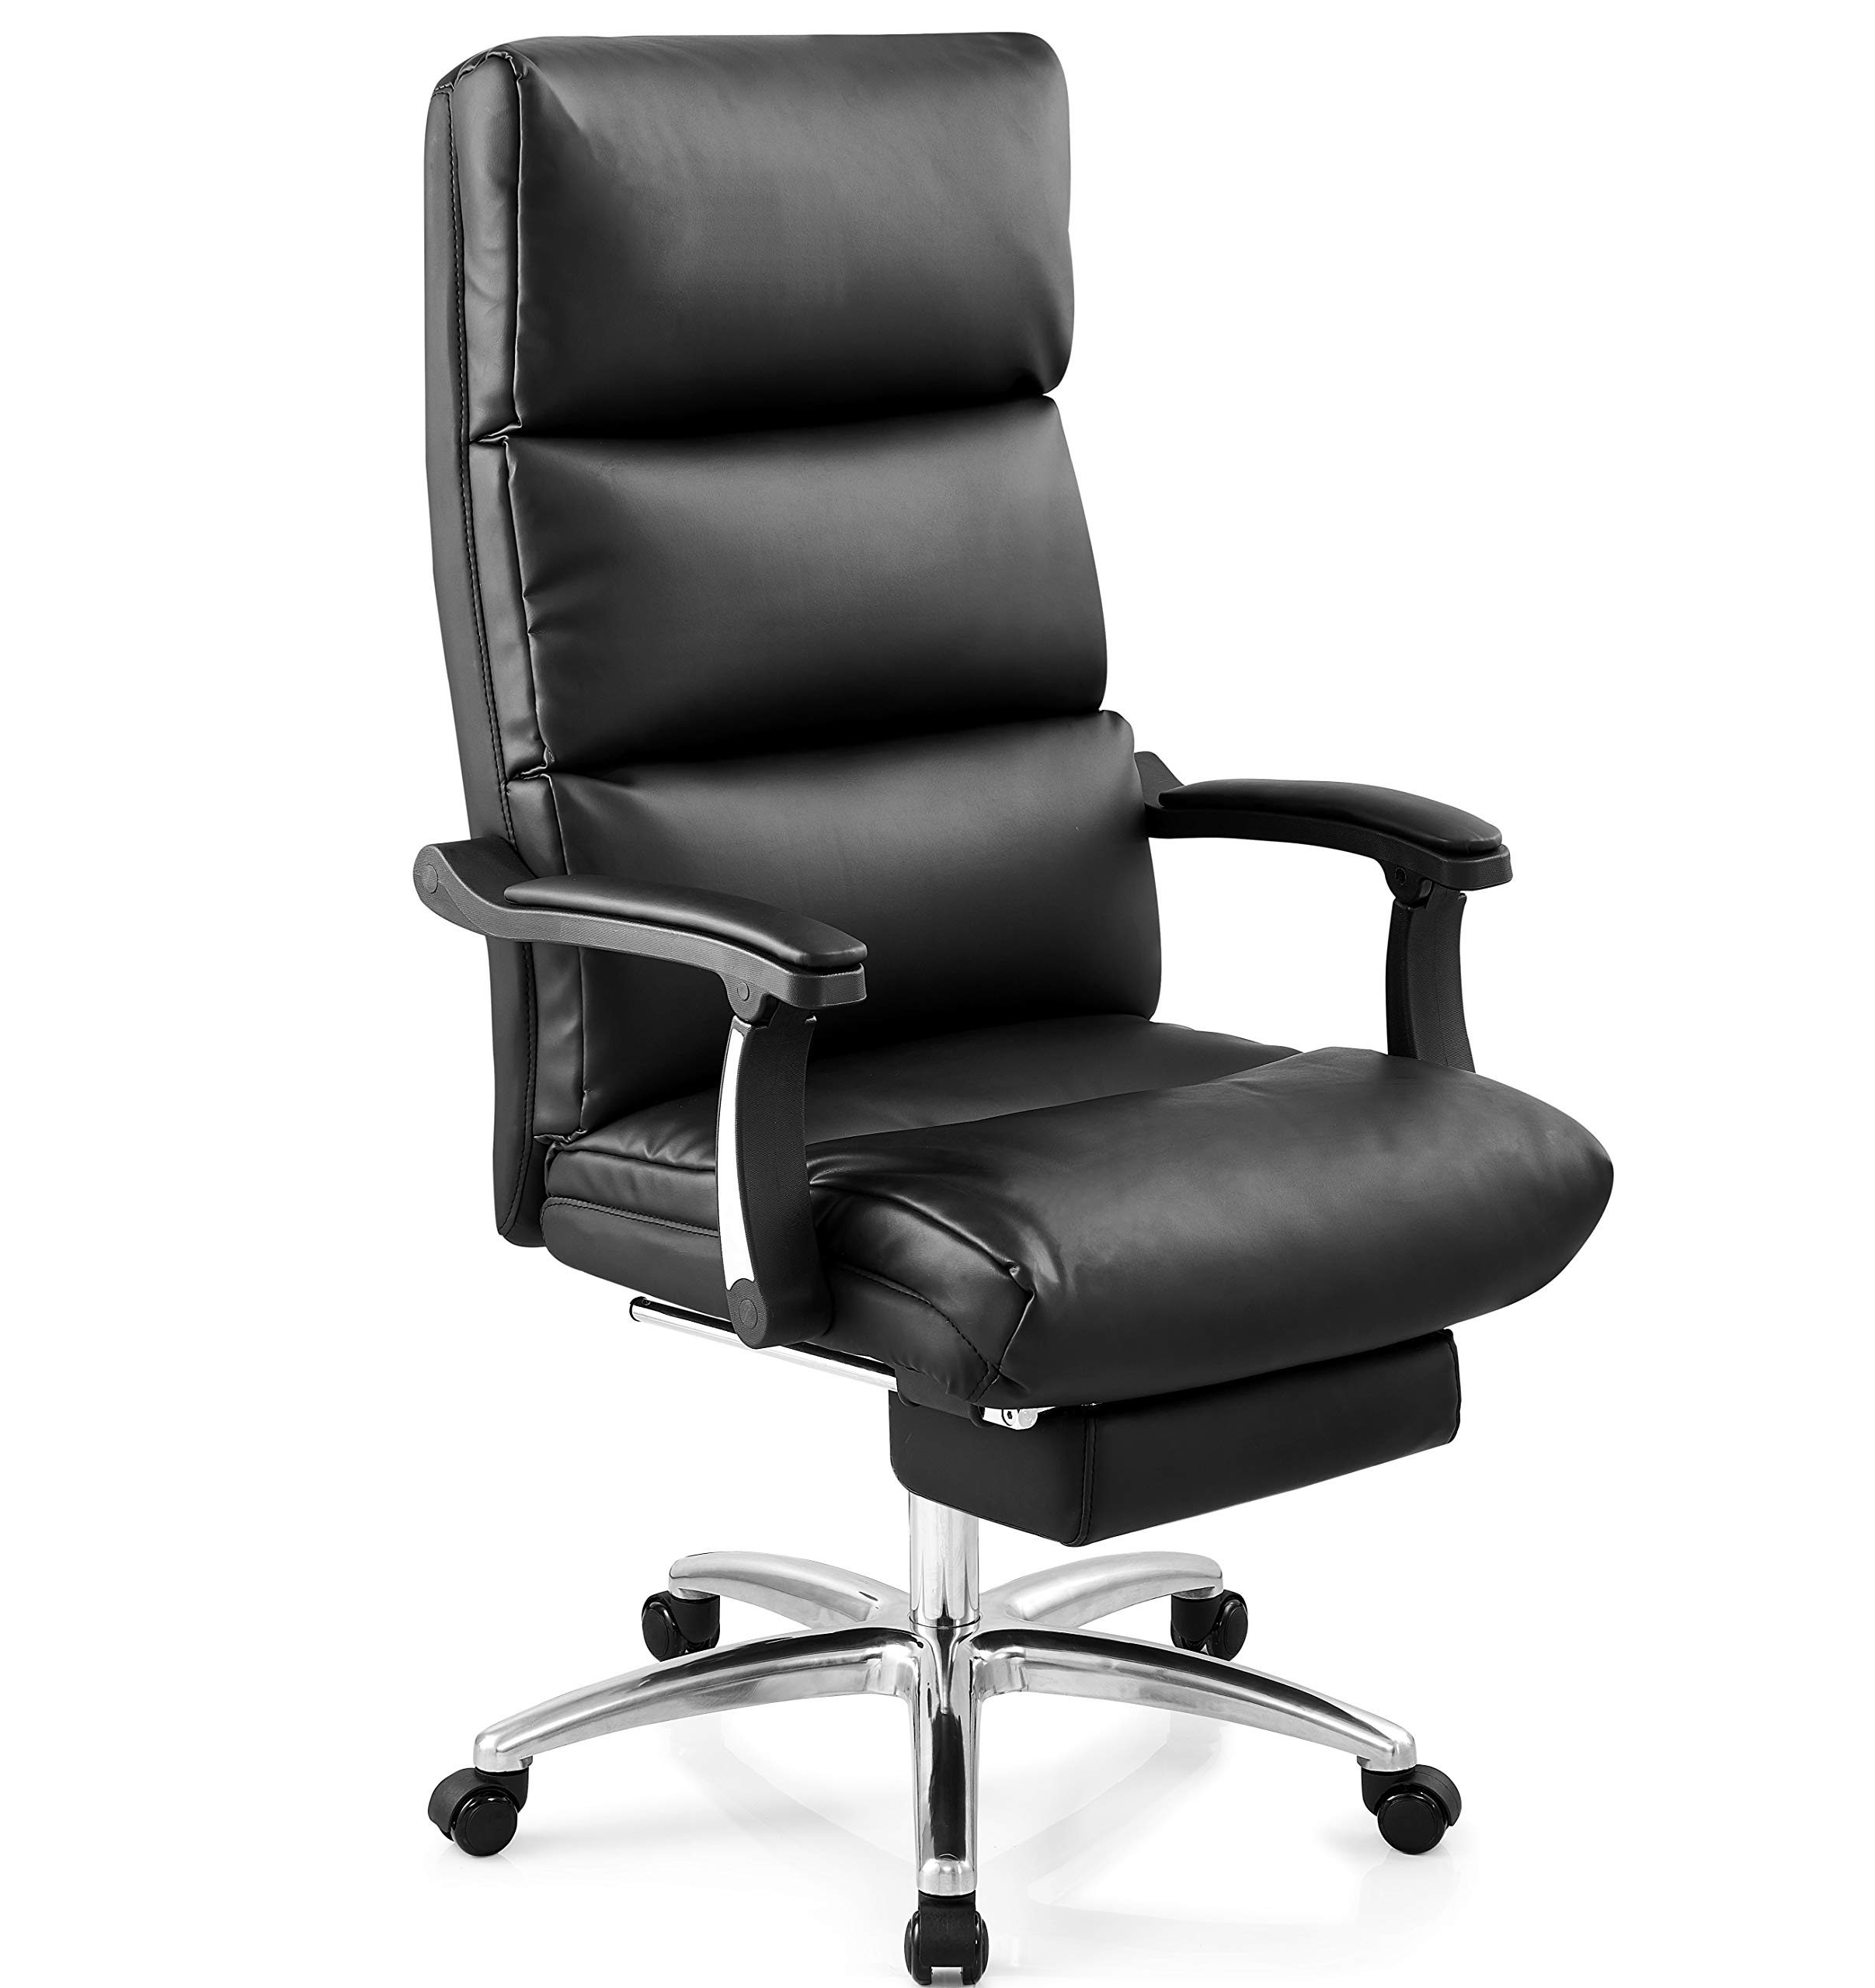 Ticova Executive Office Chair - High Back Leather Office Chair with Footrest and Thick Padding - Reclining Computer Chair with Textured Leather and Ergonomic Segmented Back, Black by Ticova